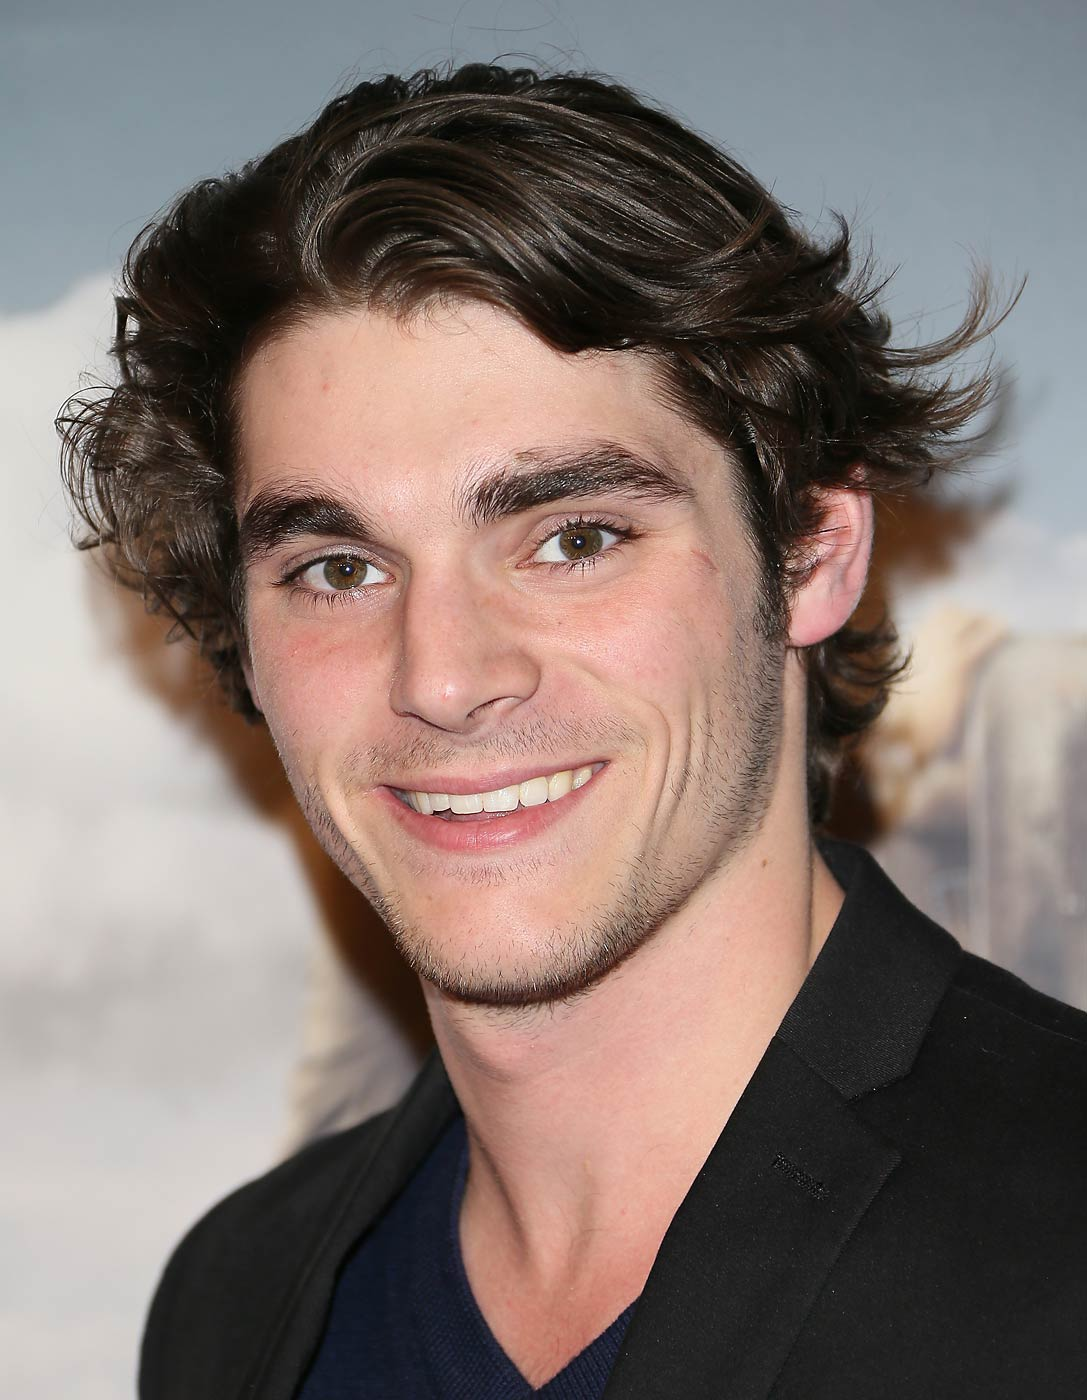 RJ Mitte attends the Better Call Saul Los Angeles Series Premiere Screening held at Regal Cinemas L.A. Live on Jan. 29, 2015 in Los Angeles, Calif.